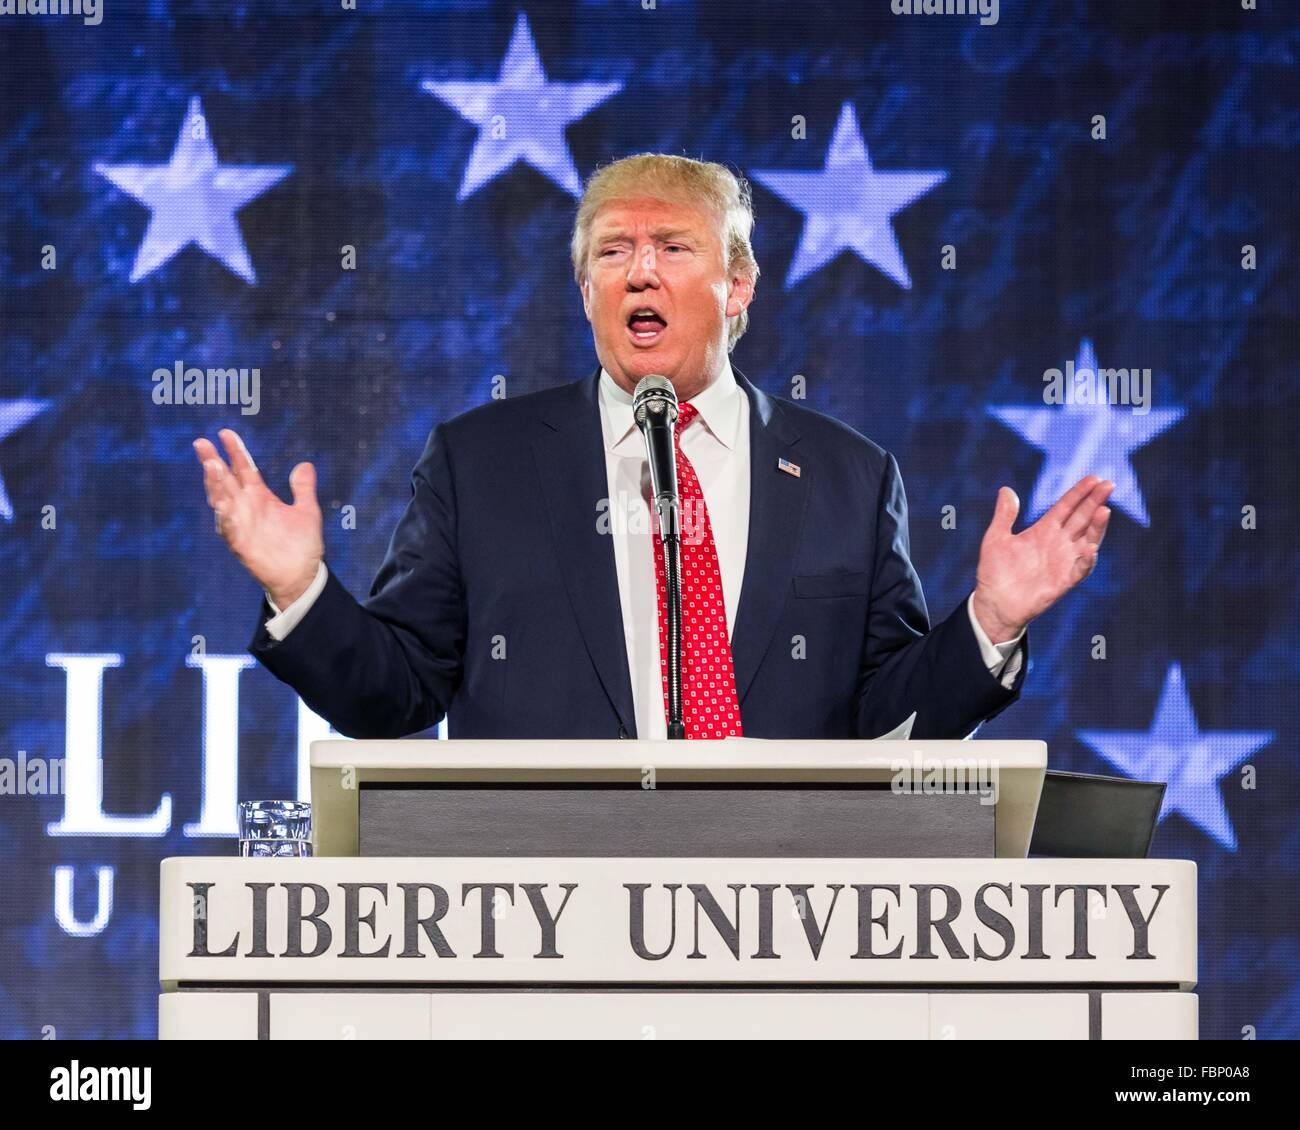 Lynchburg, Virginia, USA. 18th January, 2016. Donald Trump Speaking @ Liberty University Credit:  Mark East/Alamy - Stock Image